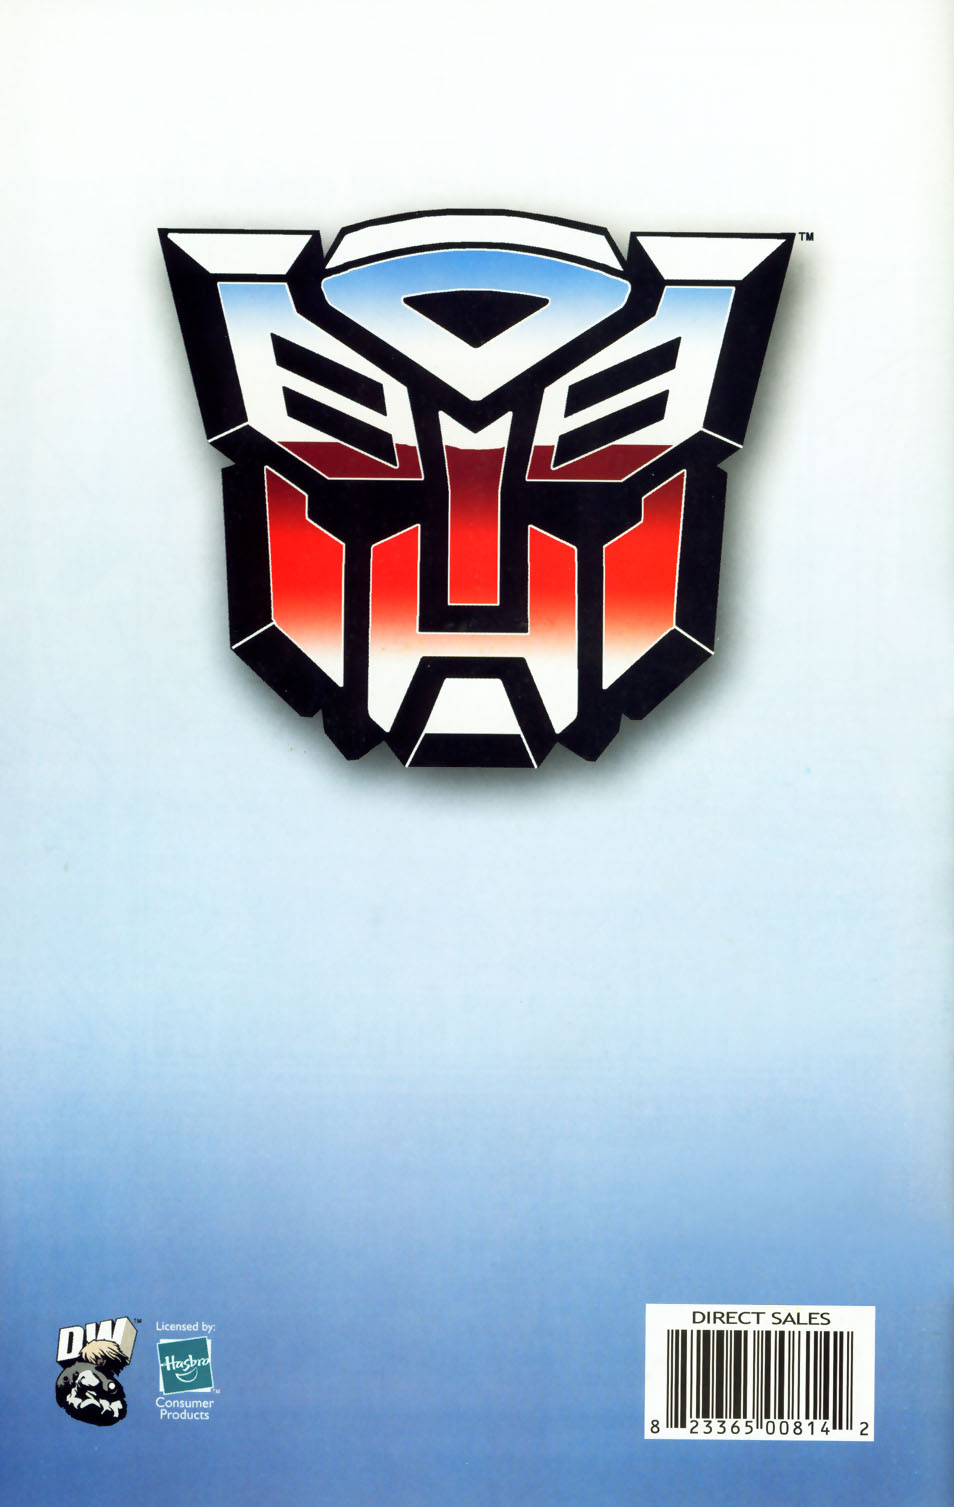 Read online Transformers: More than Meets the Eye comic -  Issue #7 - 68